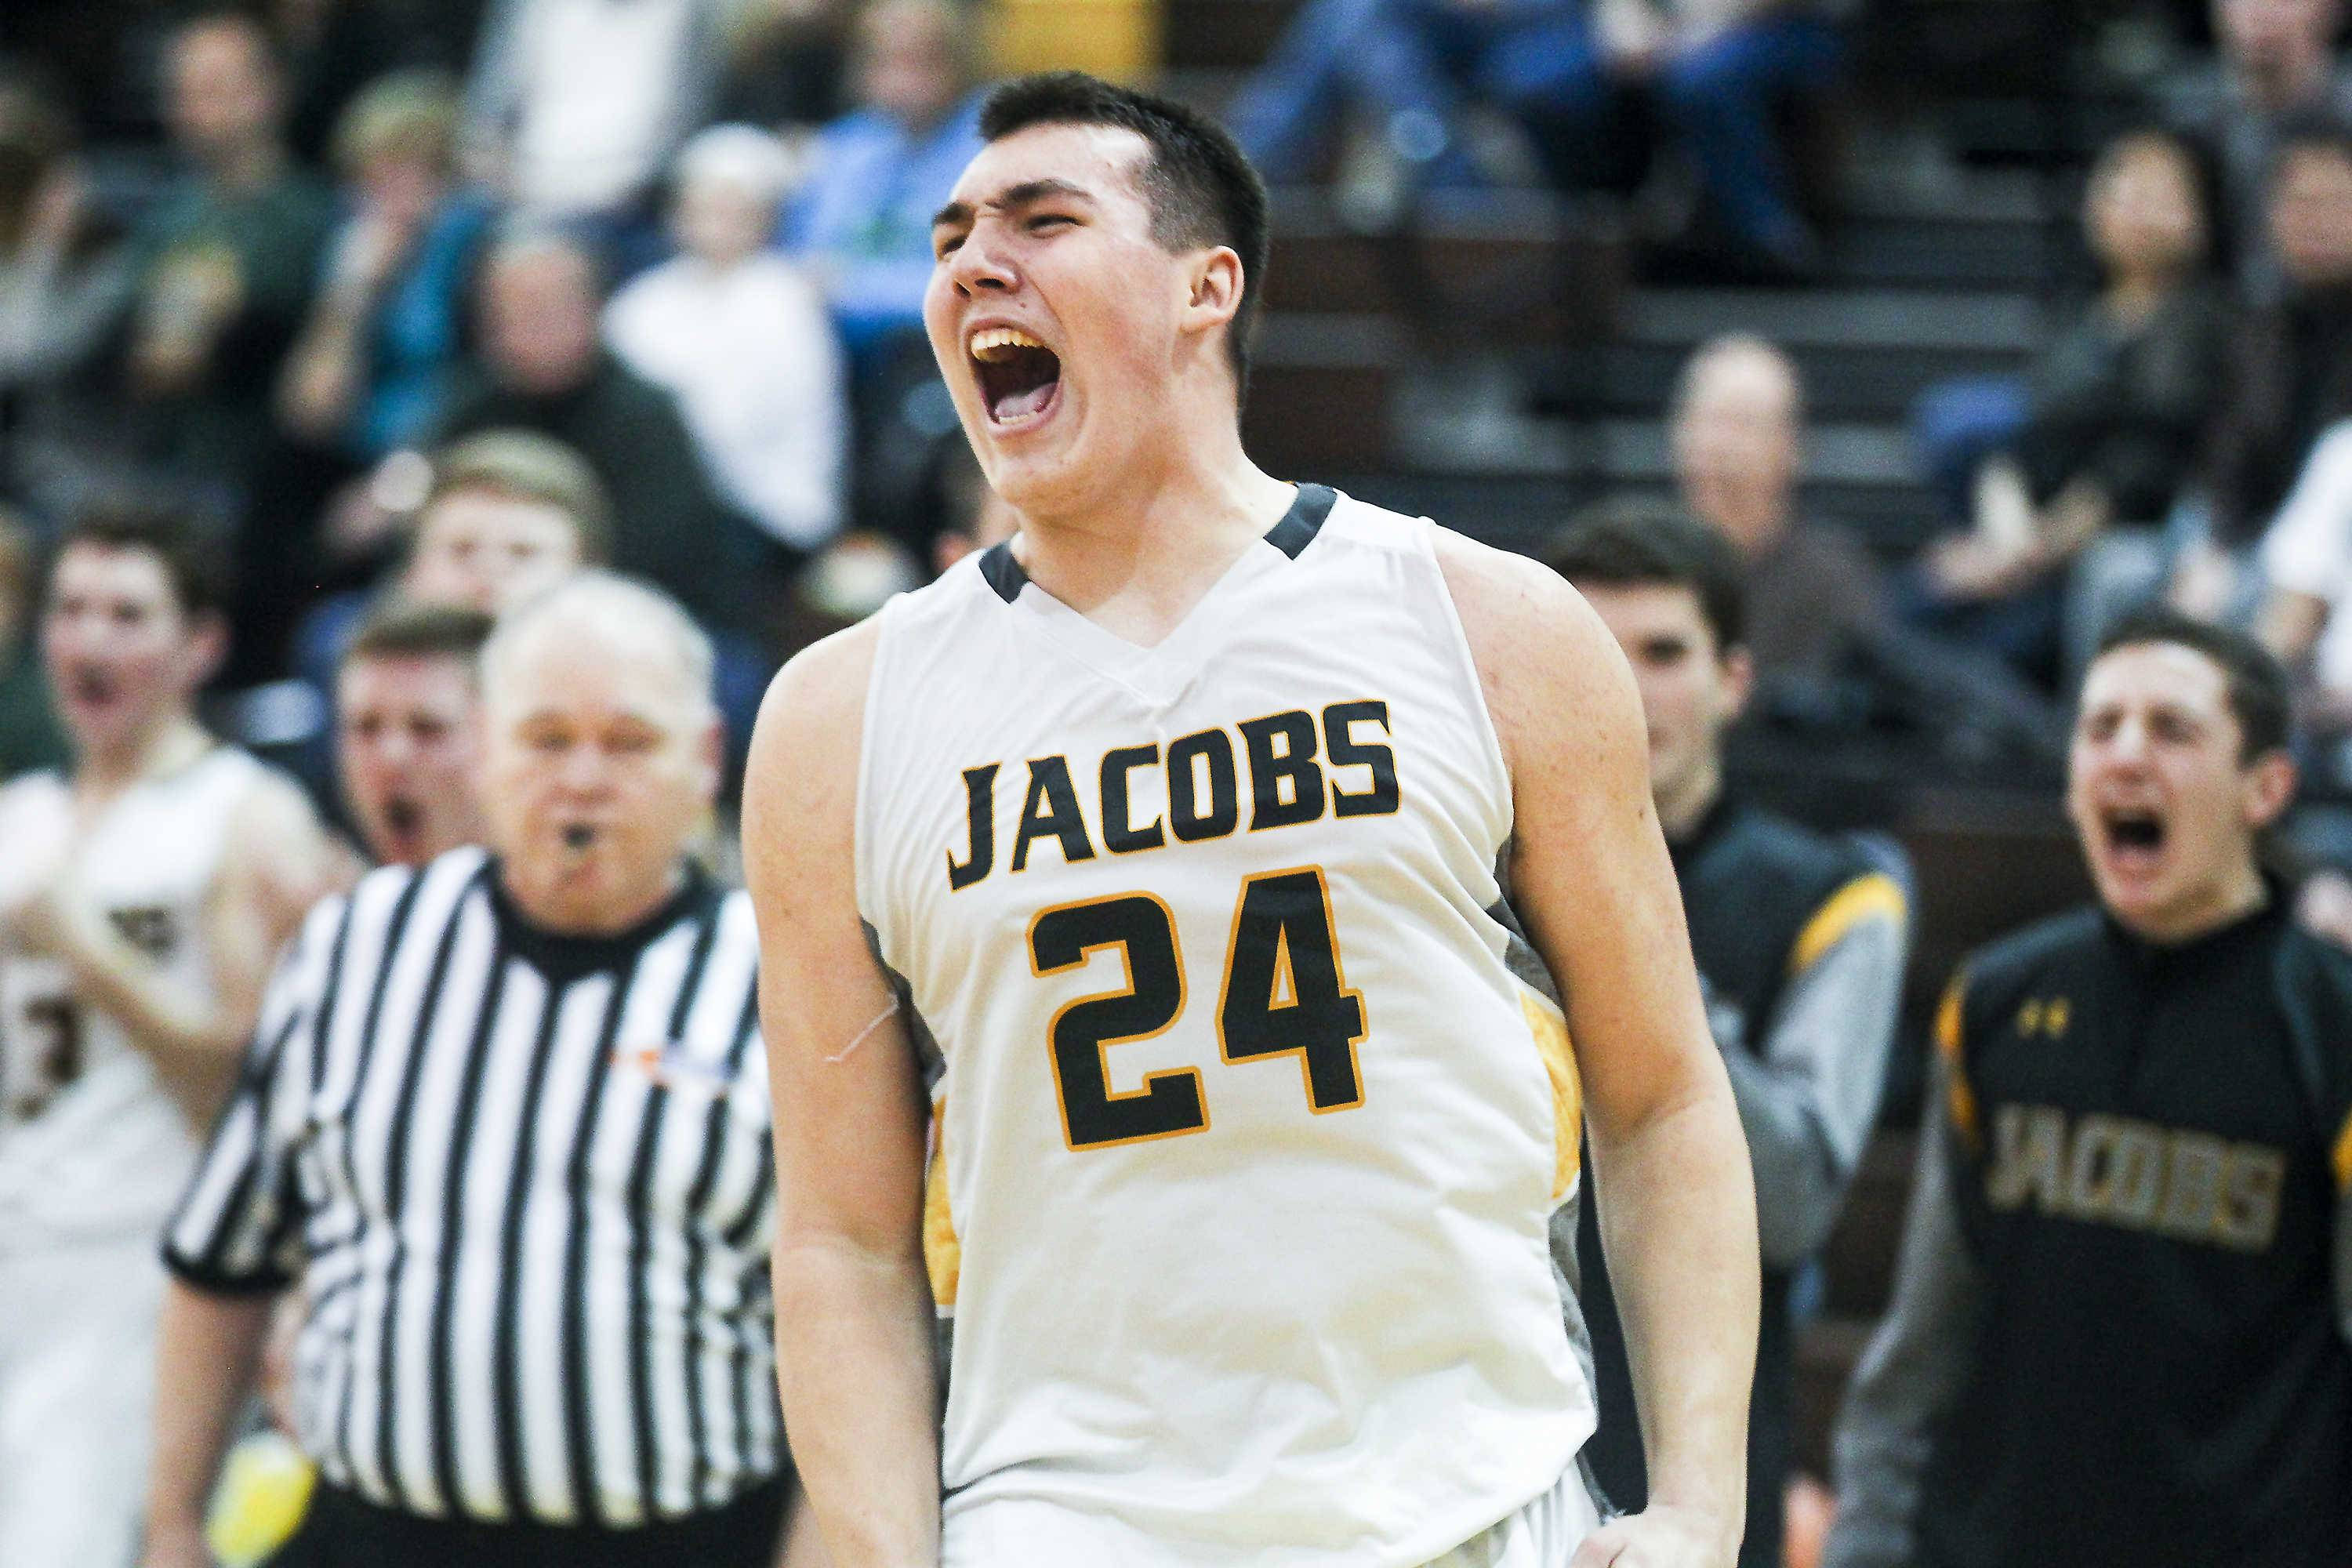 Jacobs' Cameron Krutwig celebrates after he was fouled during the fourth quarter of Friday's game against Crystal Lake South.